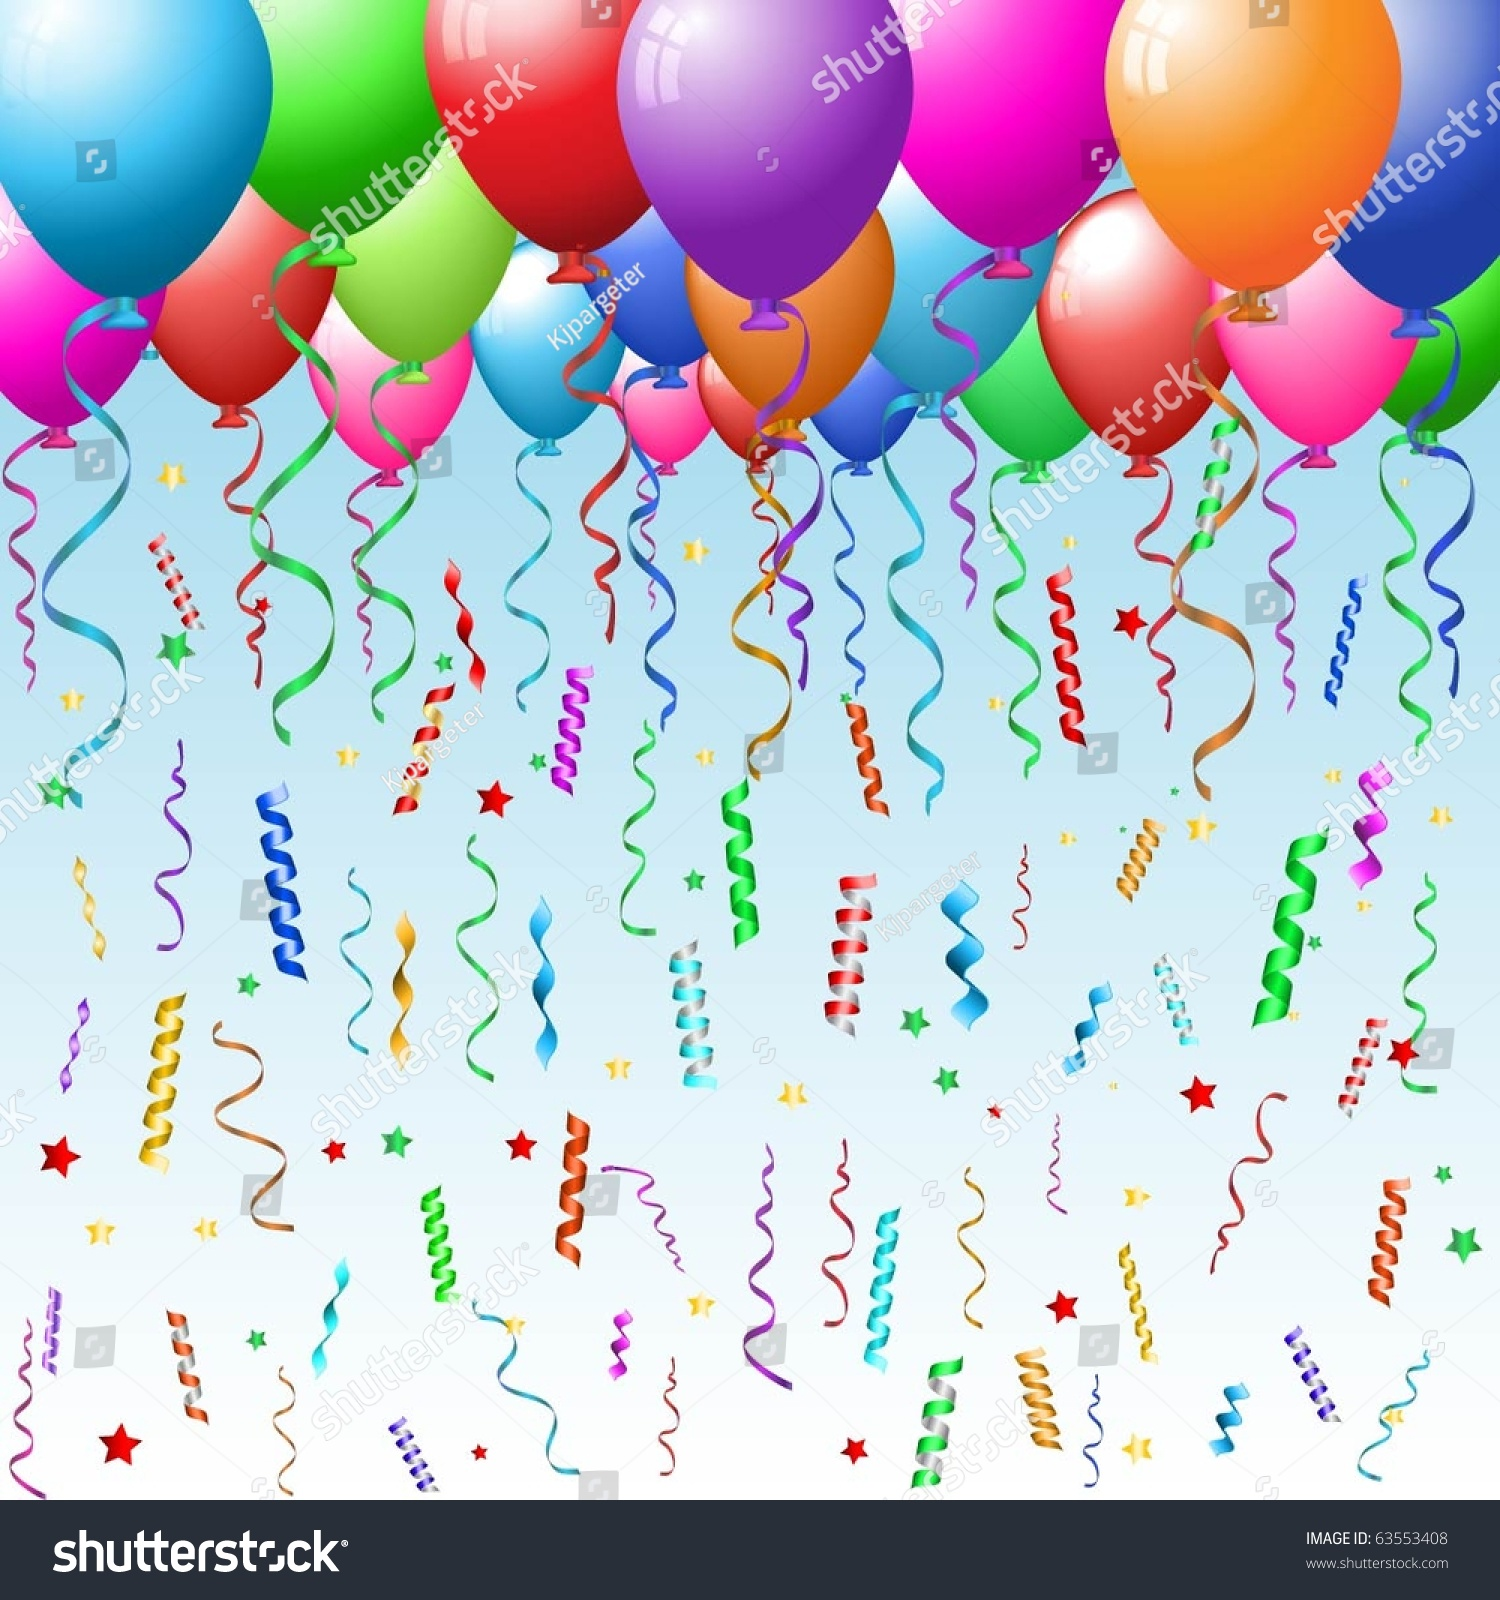 Party Background With Colourful Balloons, Confetti And Streamer Stock ...